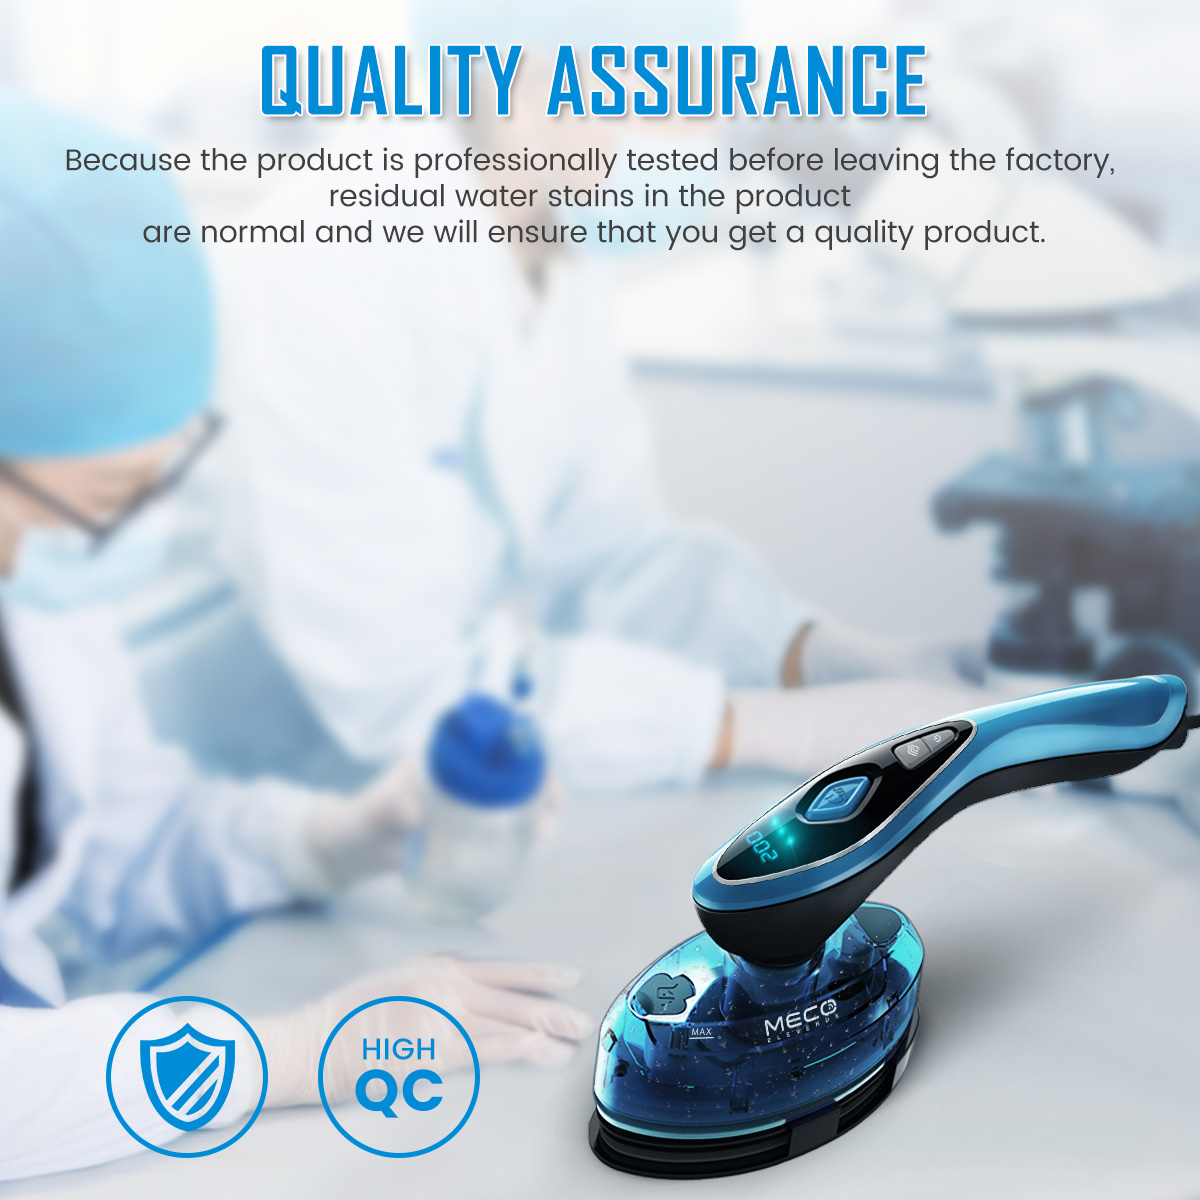 MECO ELEVERDE 2 In 1 1500W LCD Handheld Garment Steamer Ceramic Steam Iron Clothes Temp Adjustable Wrinkle Remover